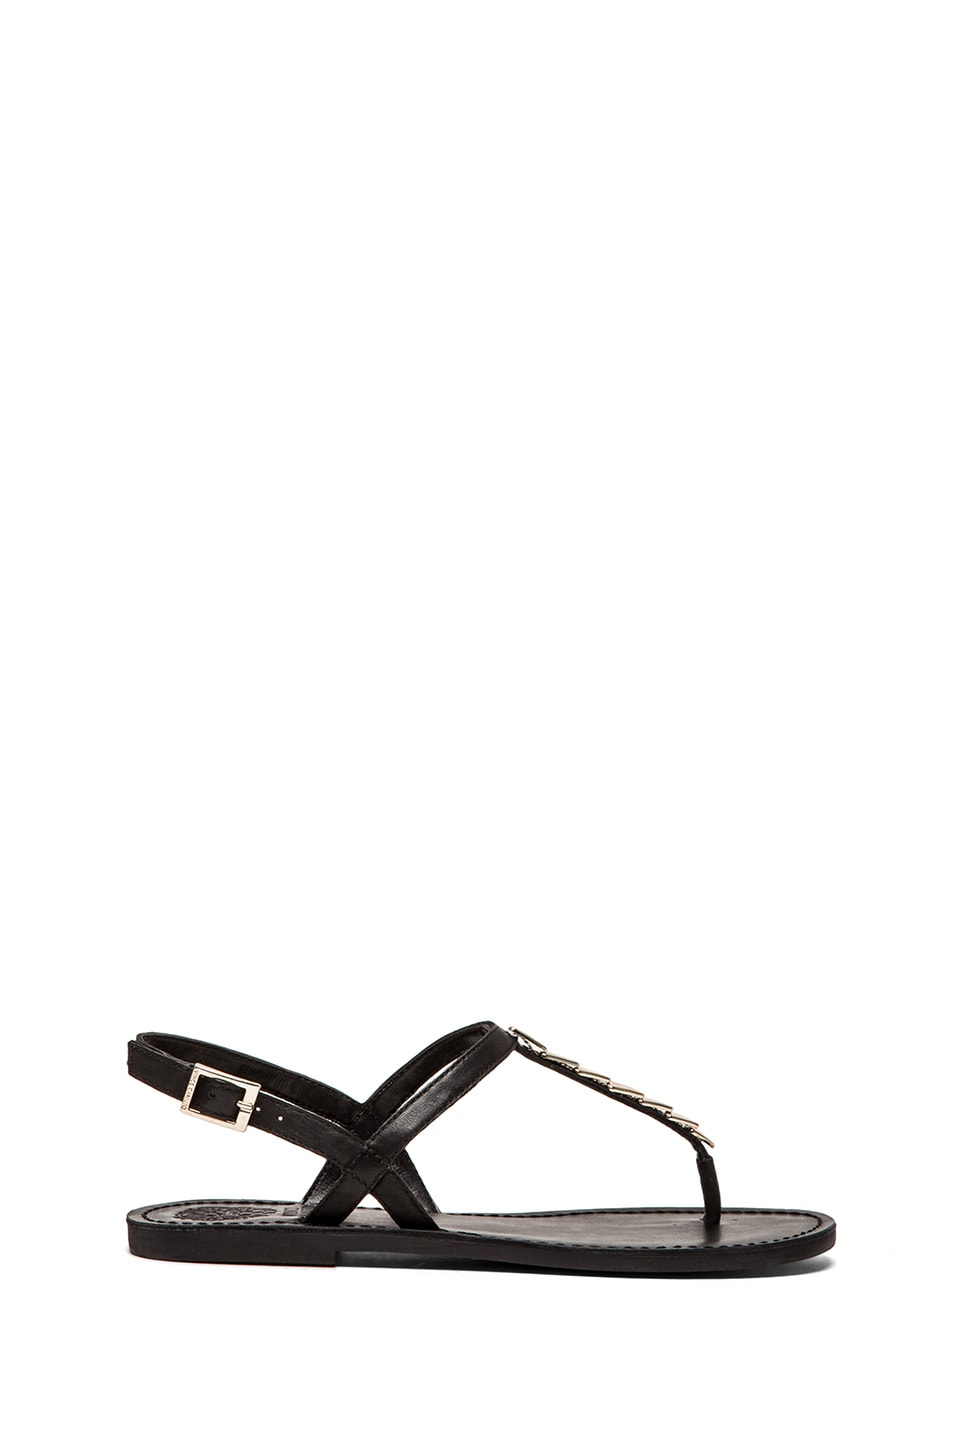 Vince Camuto Illison Sandal in Black